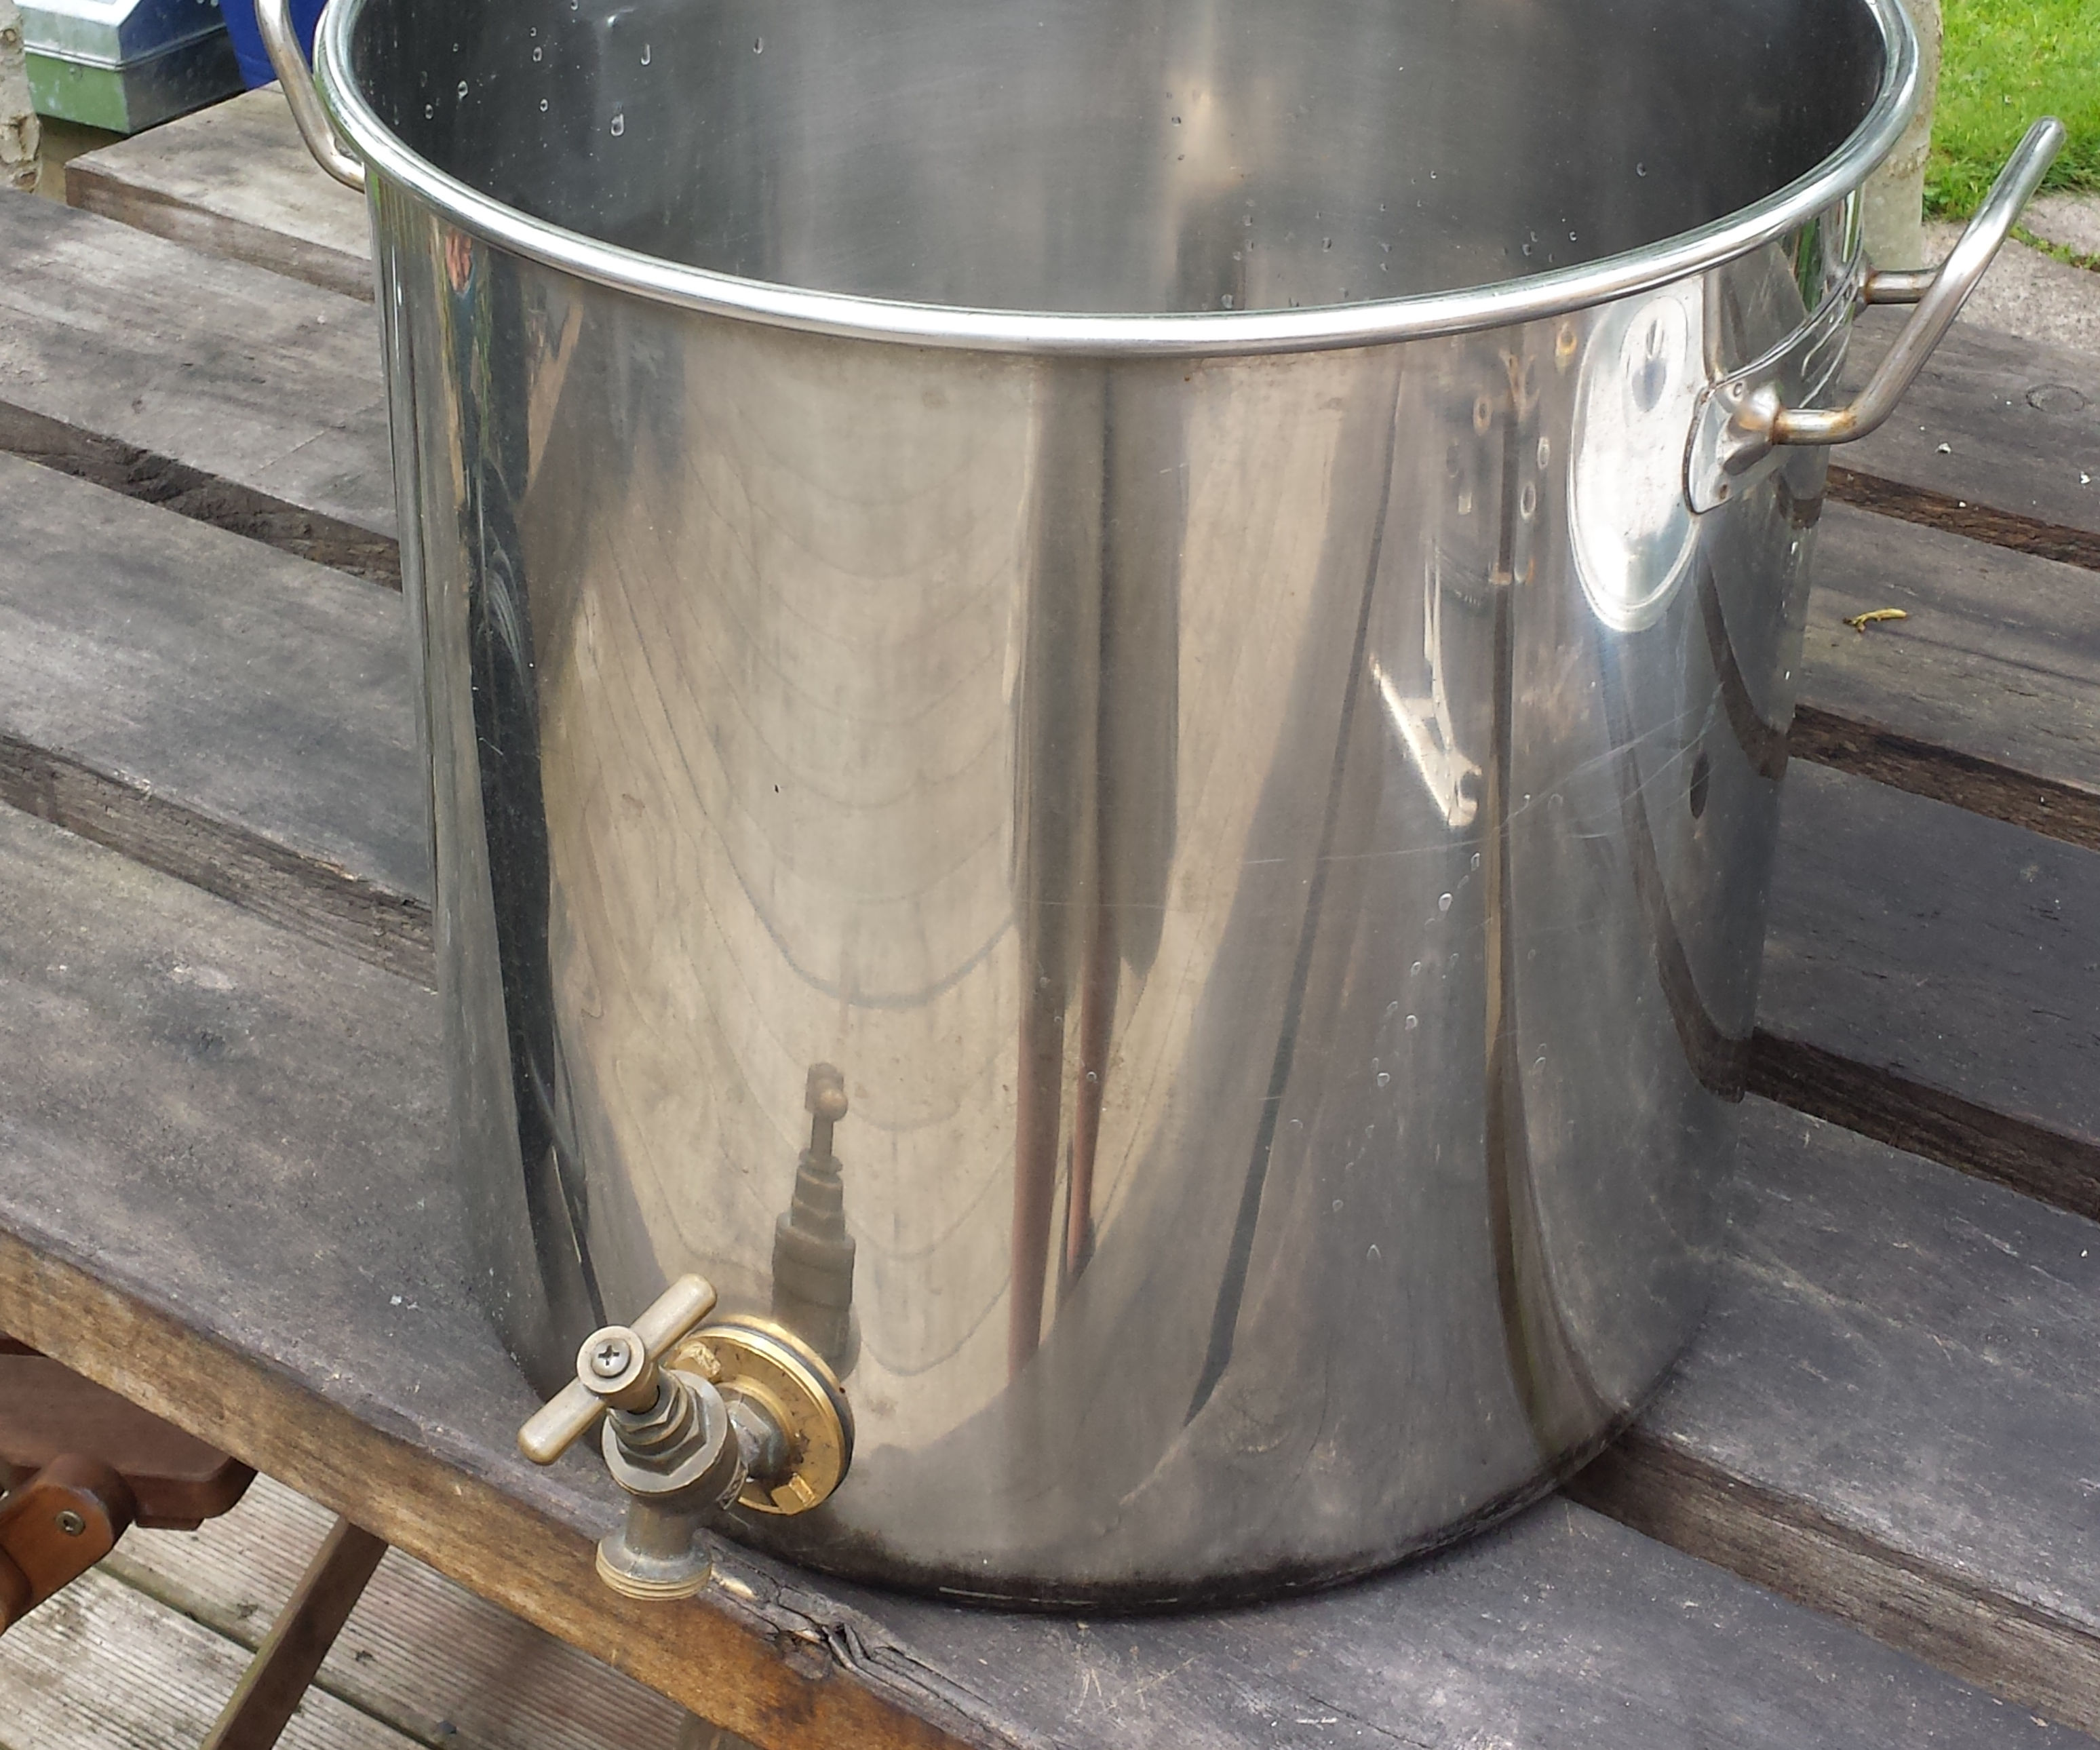 Simple Self-filter Mash Tun for All-grain Beer